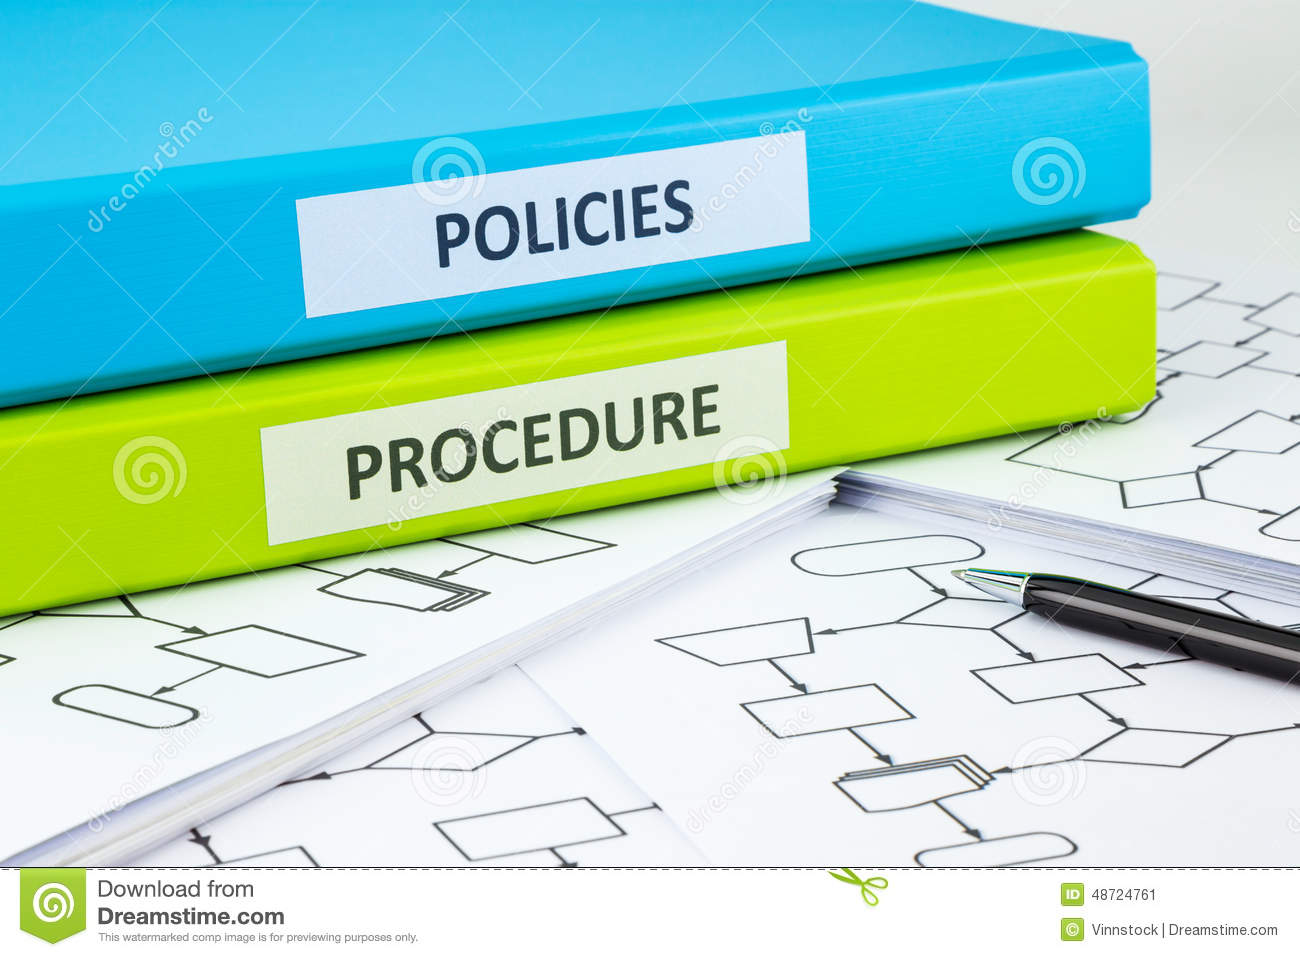 Company Policy | Company Policies And Procedures Stock Image Image Of Flow Chart